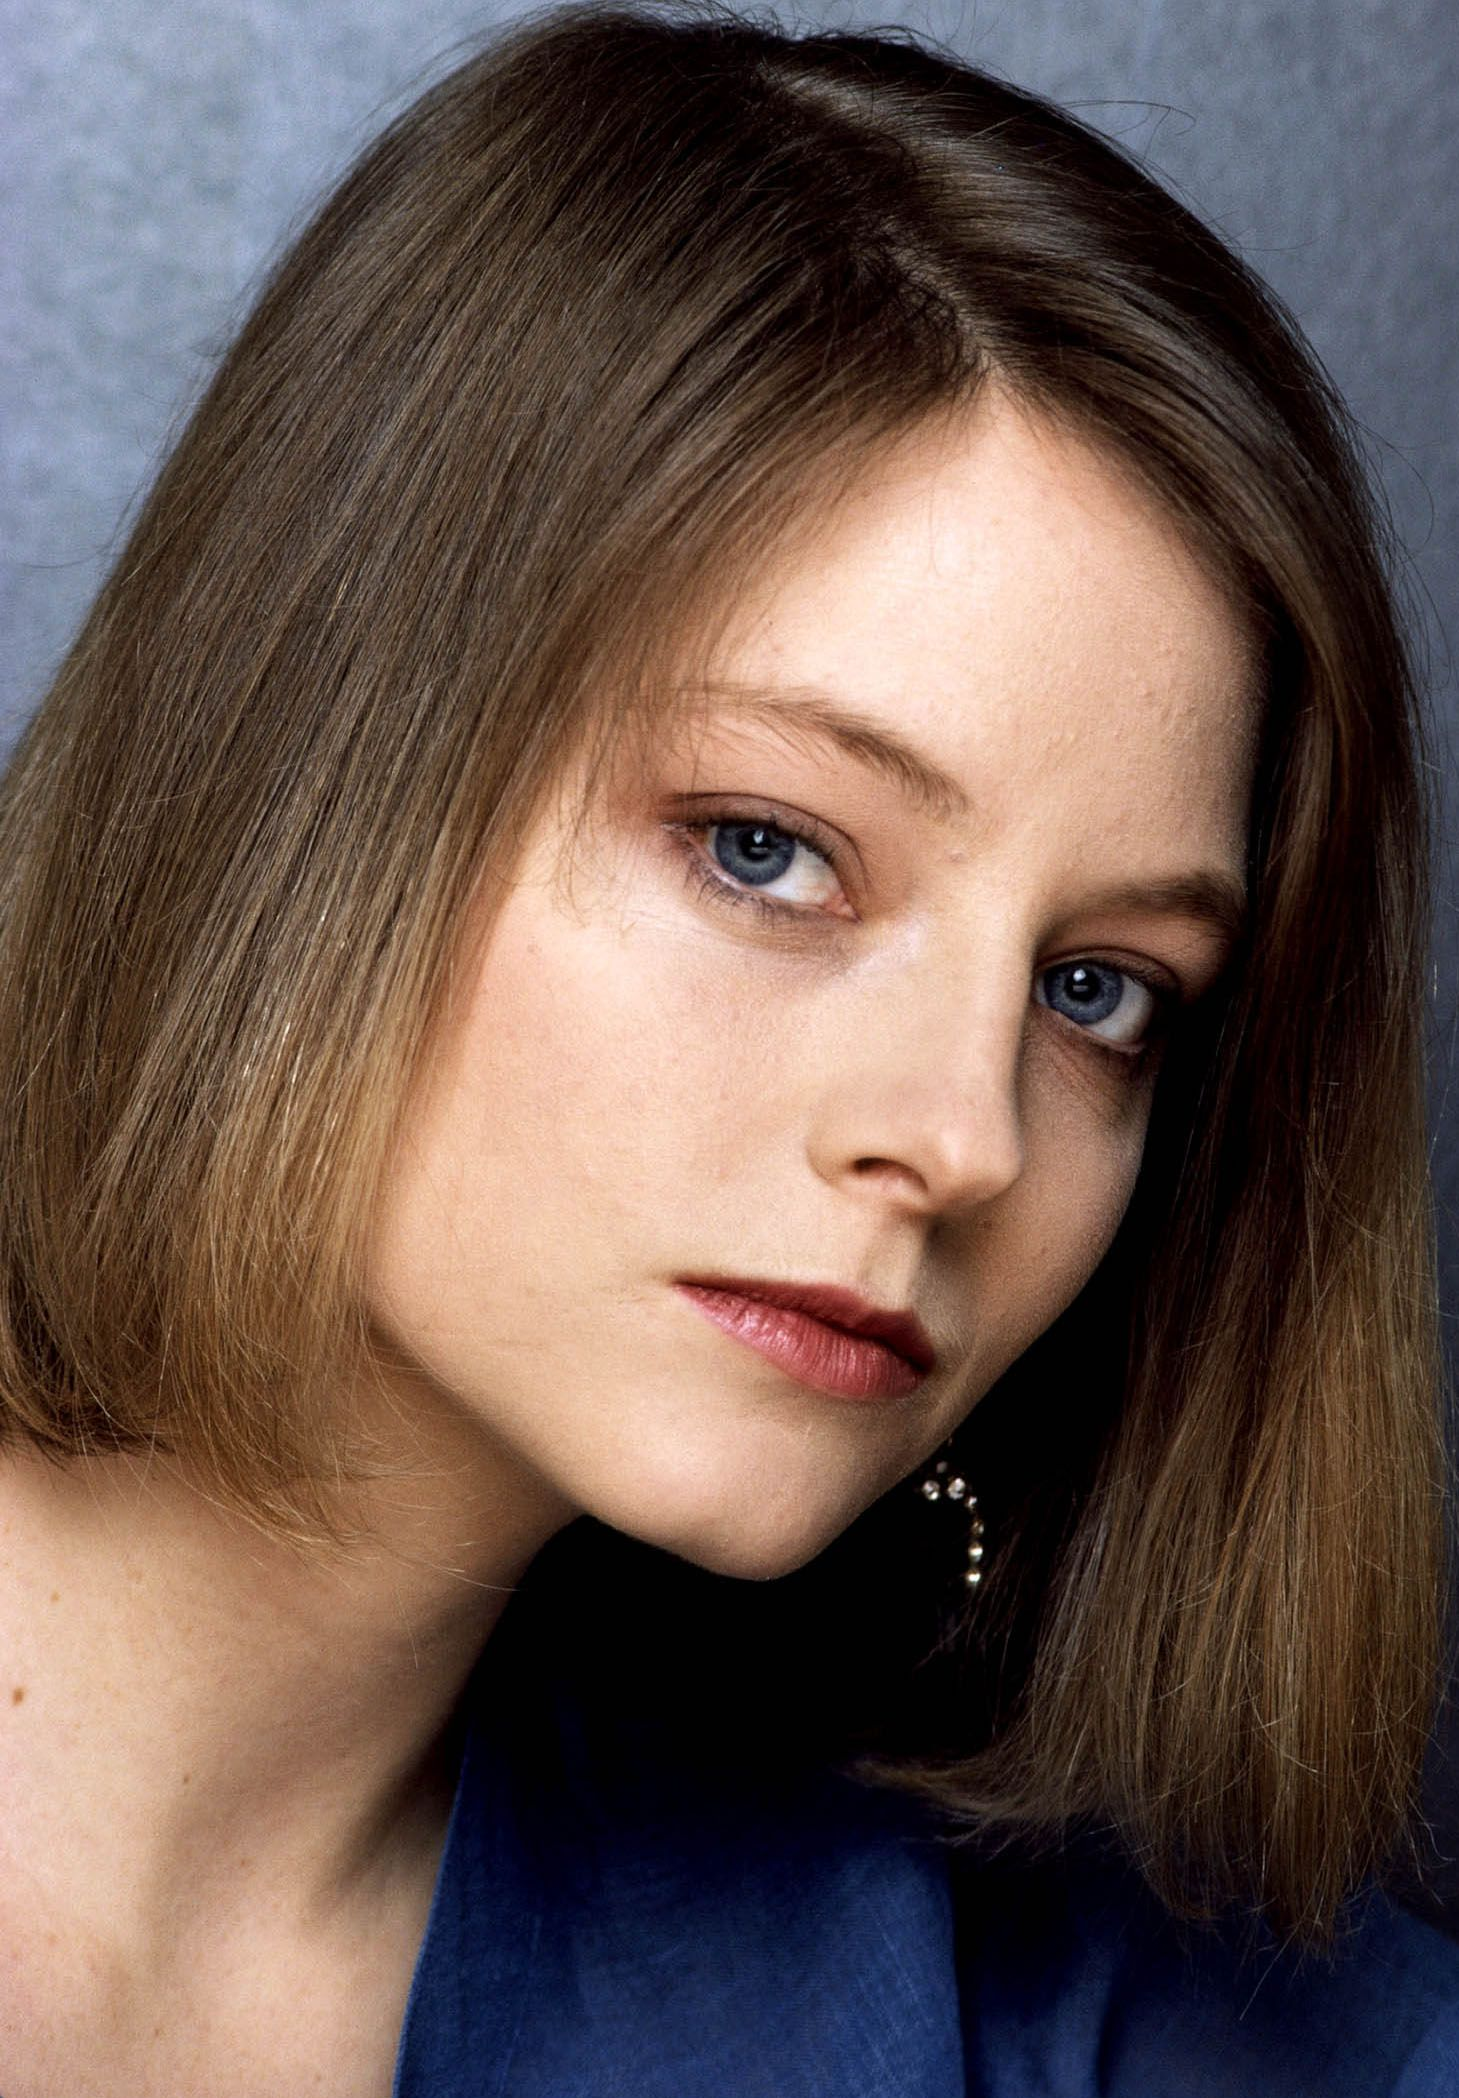 Jodie Foster For more visit: www.charmingdamsels.tk